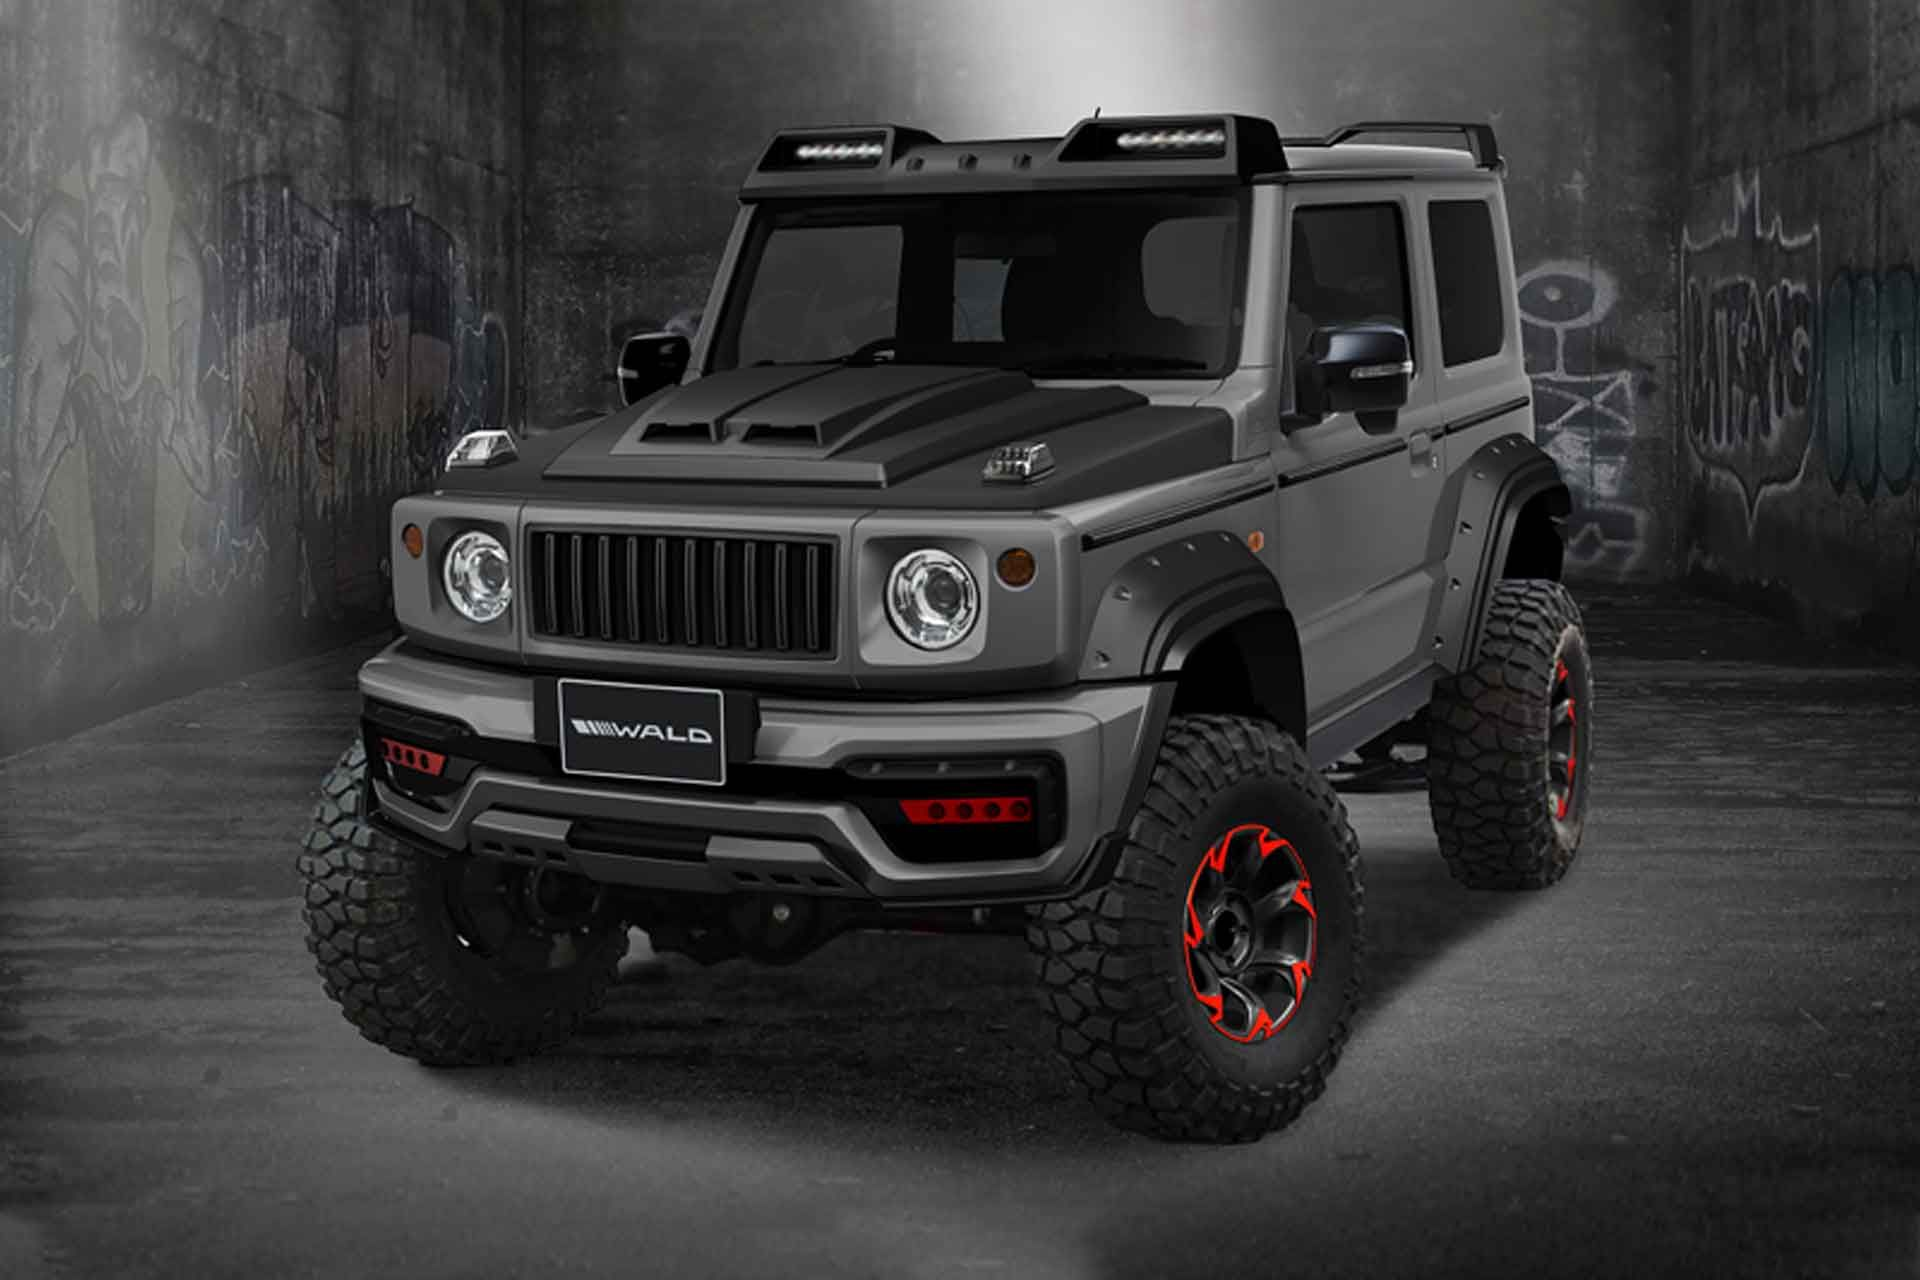 The New Suzuki Jimny Has Become A Massive Hit Since The Fourth Generation Arrived In 2018 Custom Shops Hav Suzuki Jimny New Suzuki Jimny Suzuki Jimny Off Road